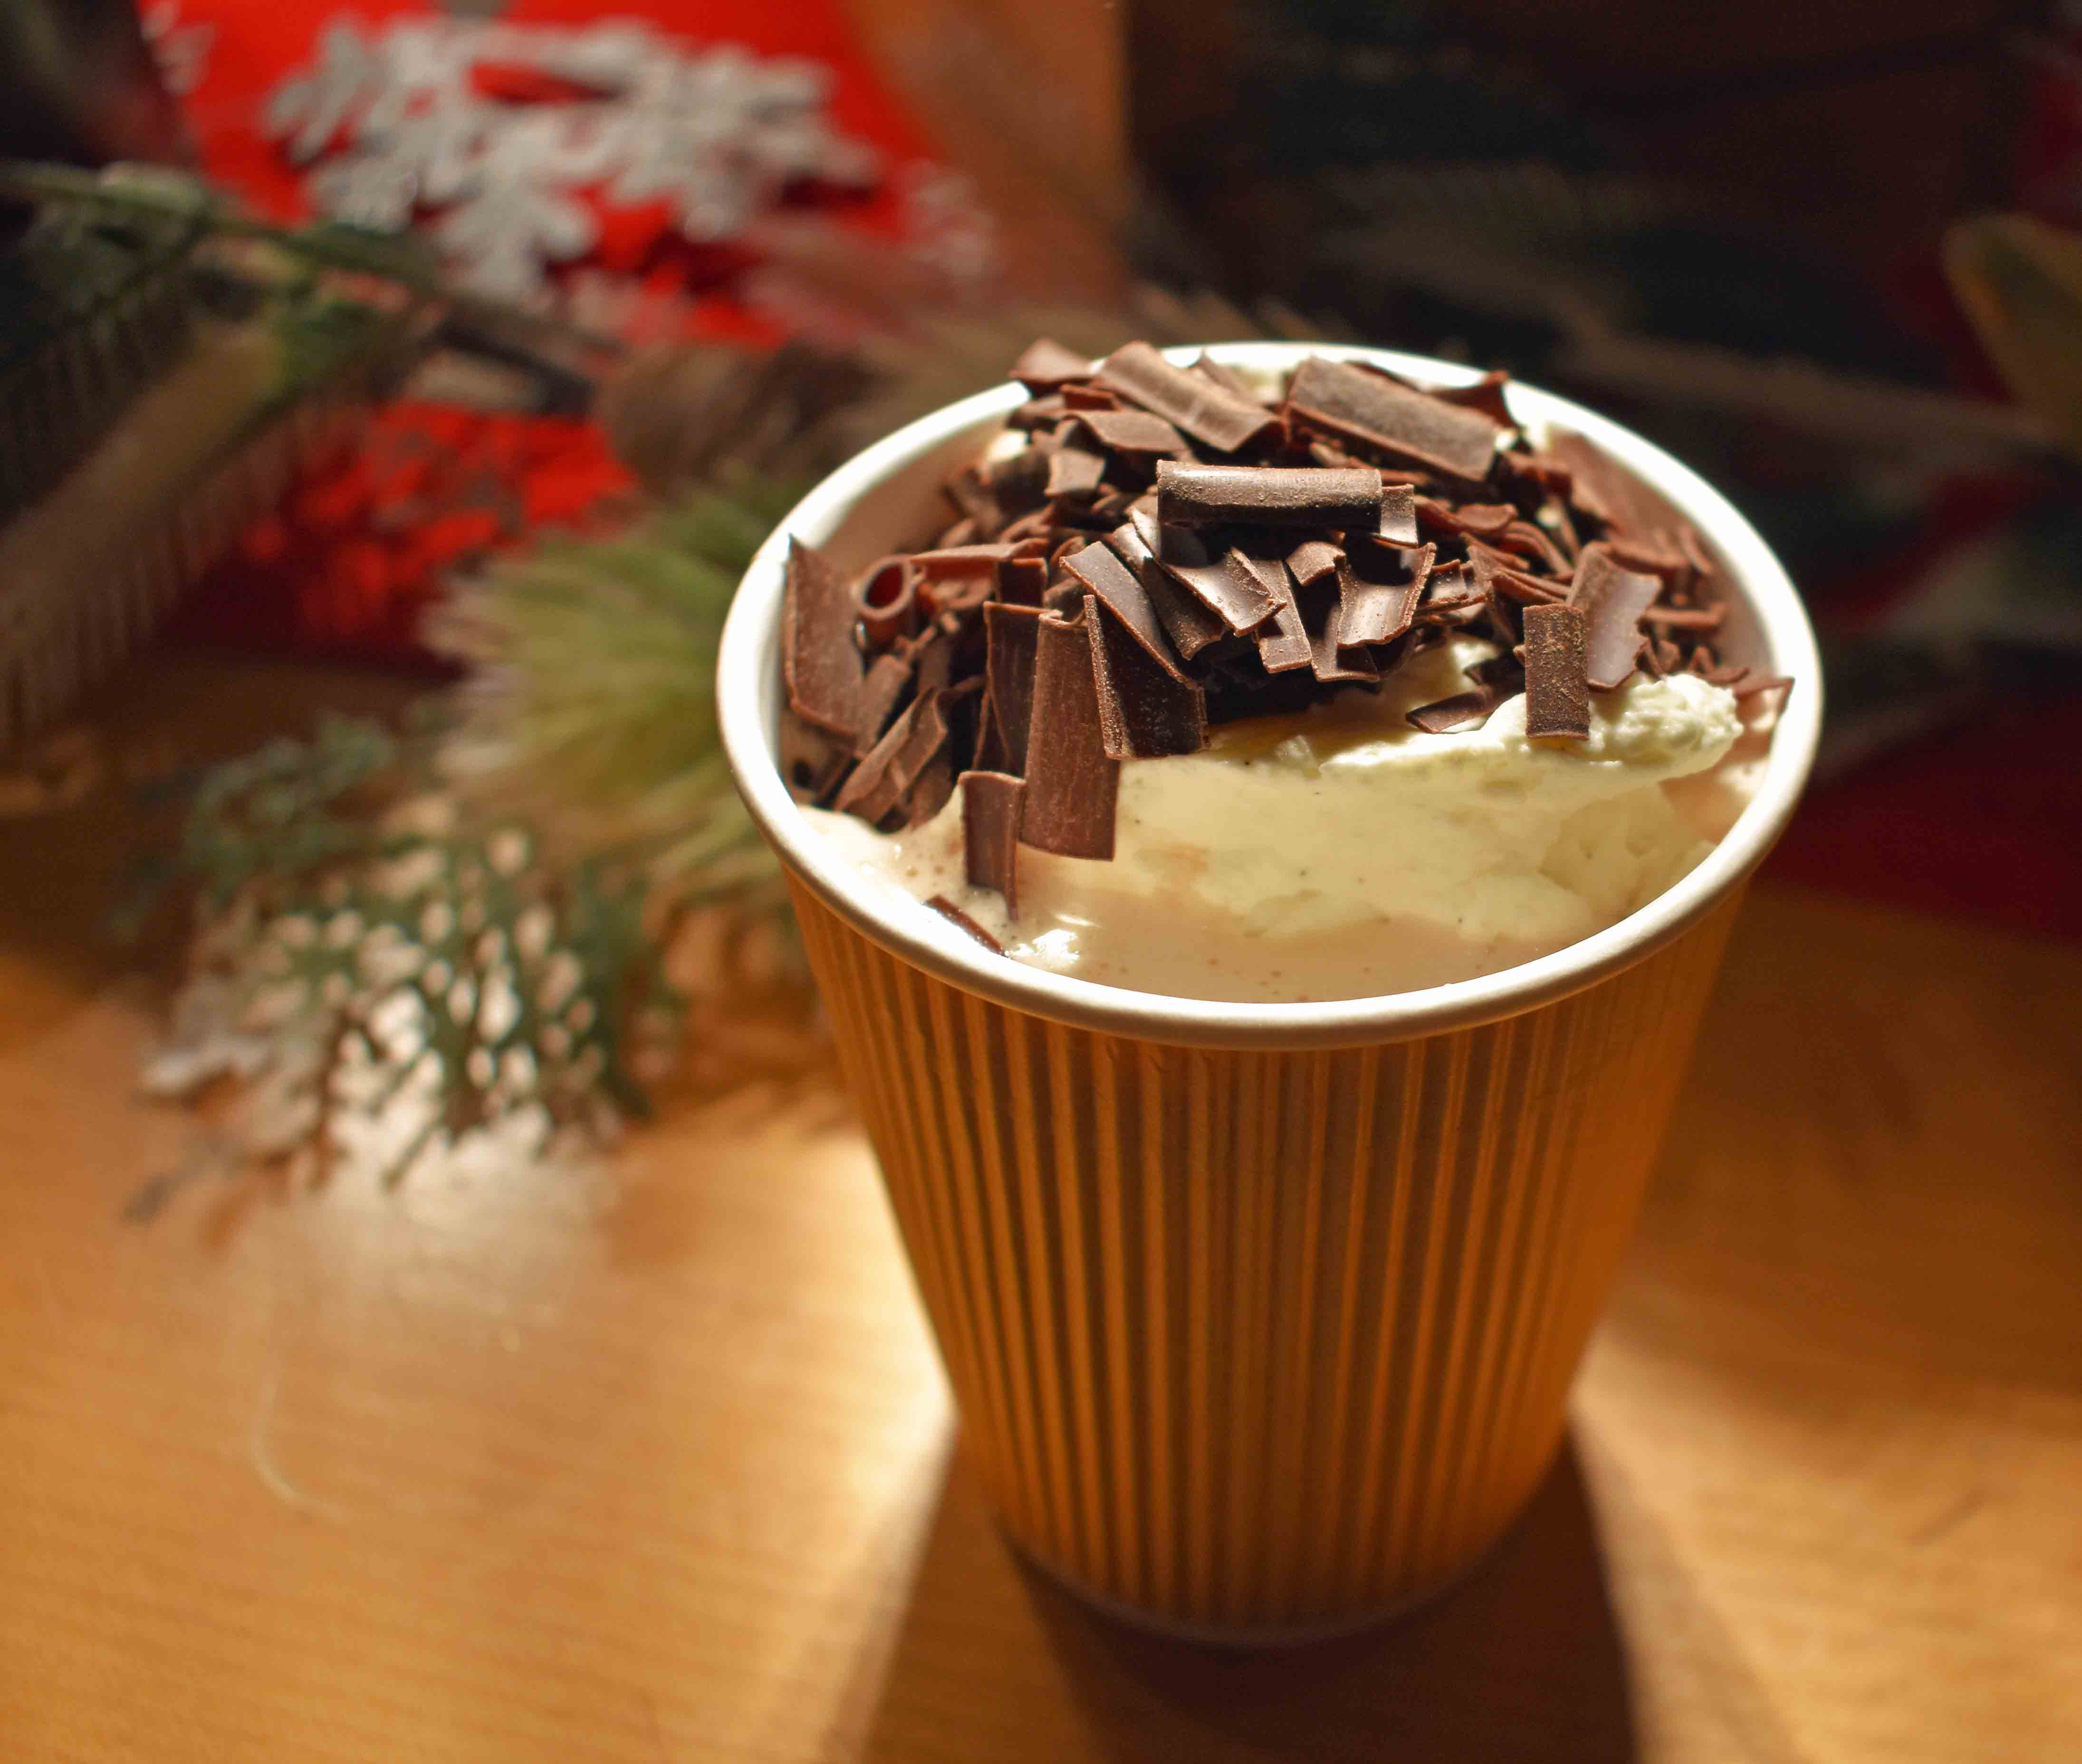 Arizona Four Seasons Christmas and Homemade Hot Chocolate. Four Seasons Scottsdale Troon North Festival Flicks.